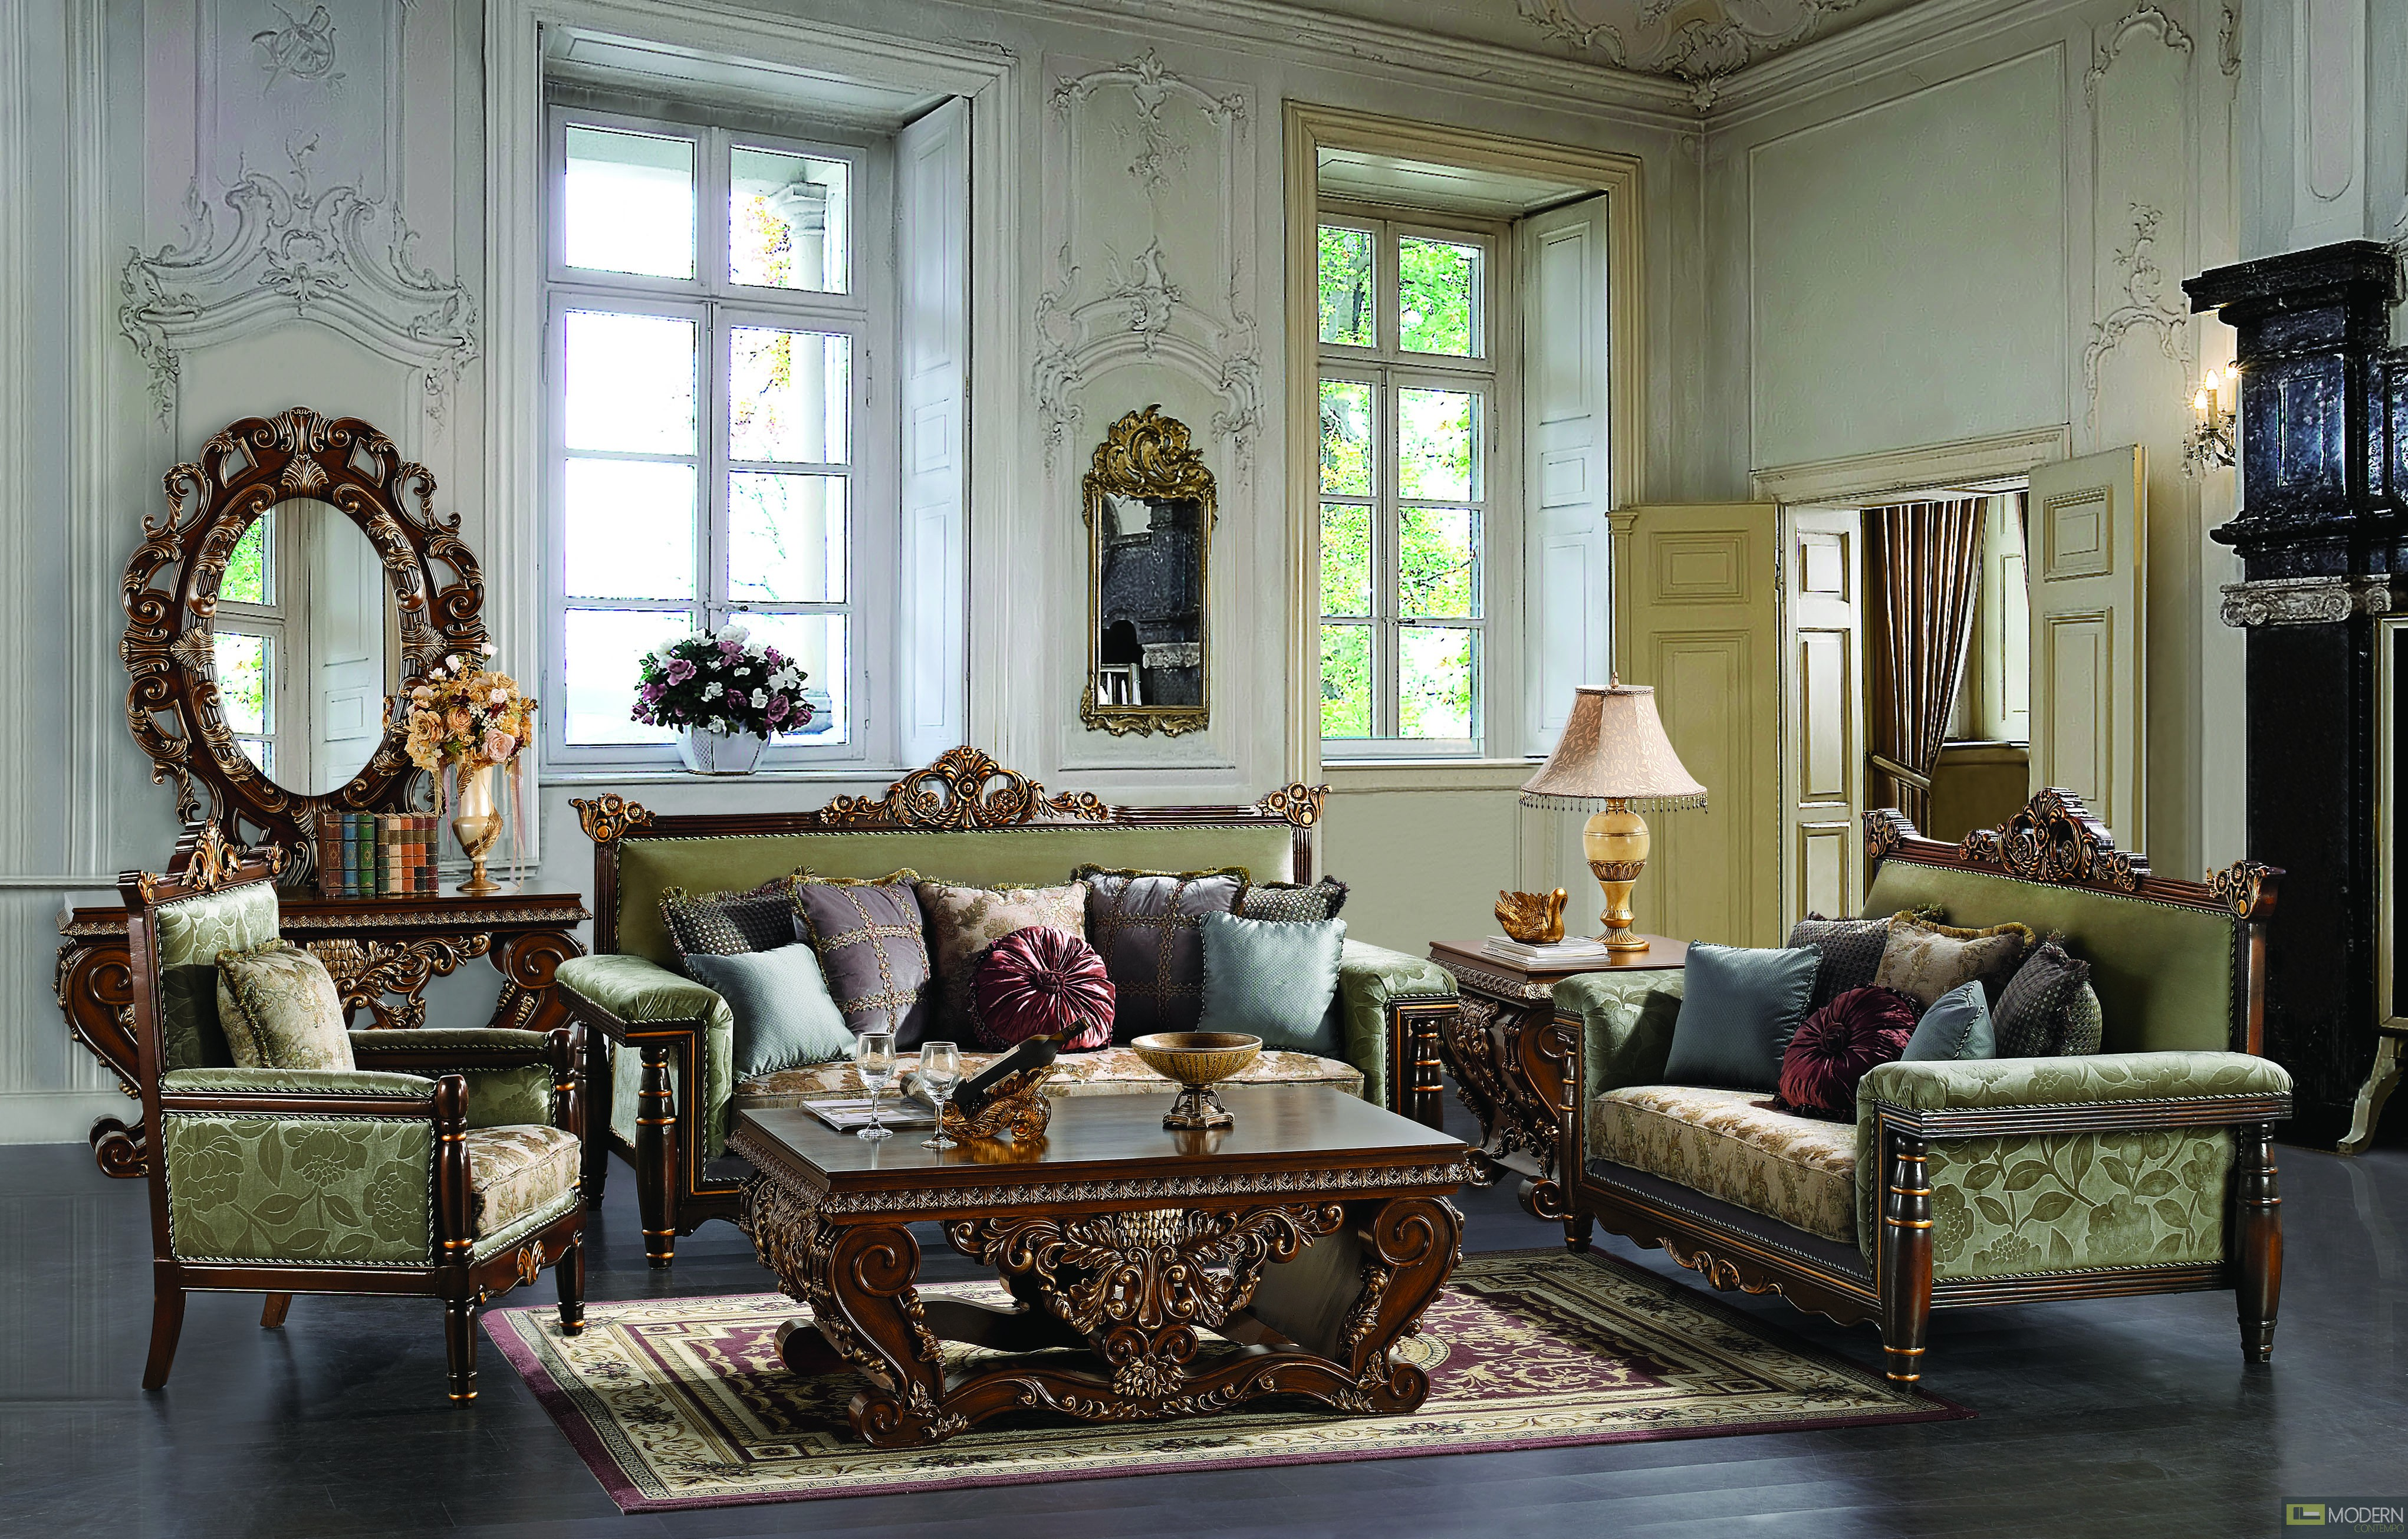 Likeable Show Home Decorating Ideas Of Living Room Modern Traditional Interior Design Living Acnn Decor